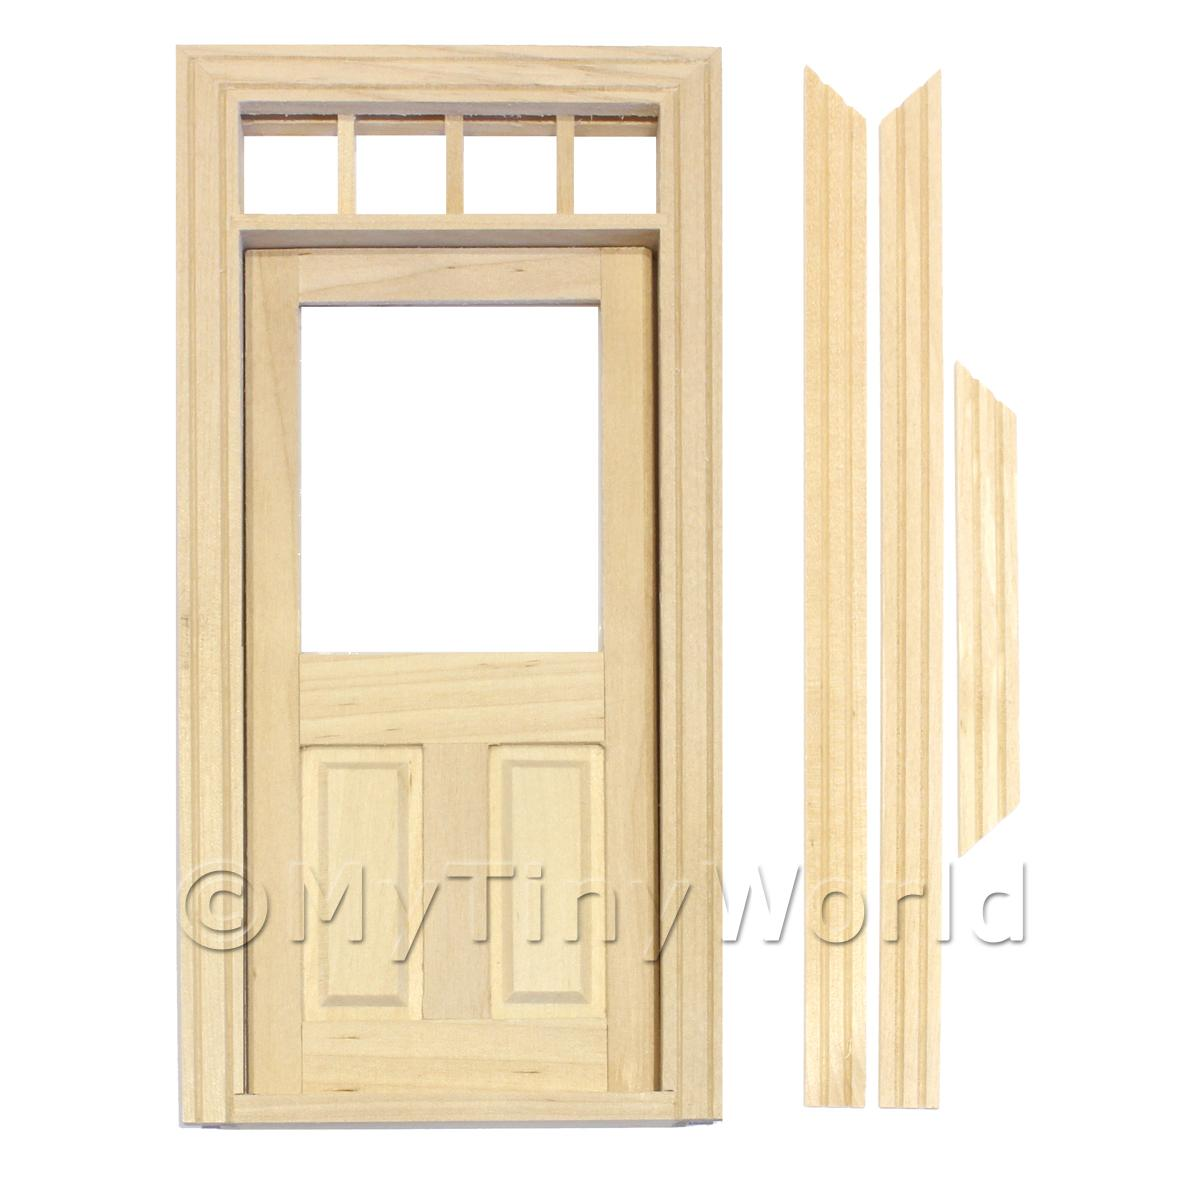 Dolls House Miniature  | Dolls House Decorative Wood Door With Glaze Pane And 4 Open Panes